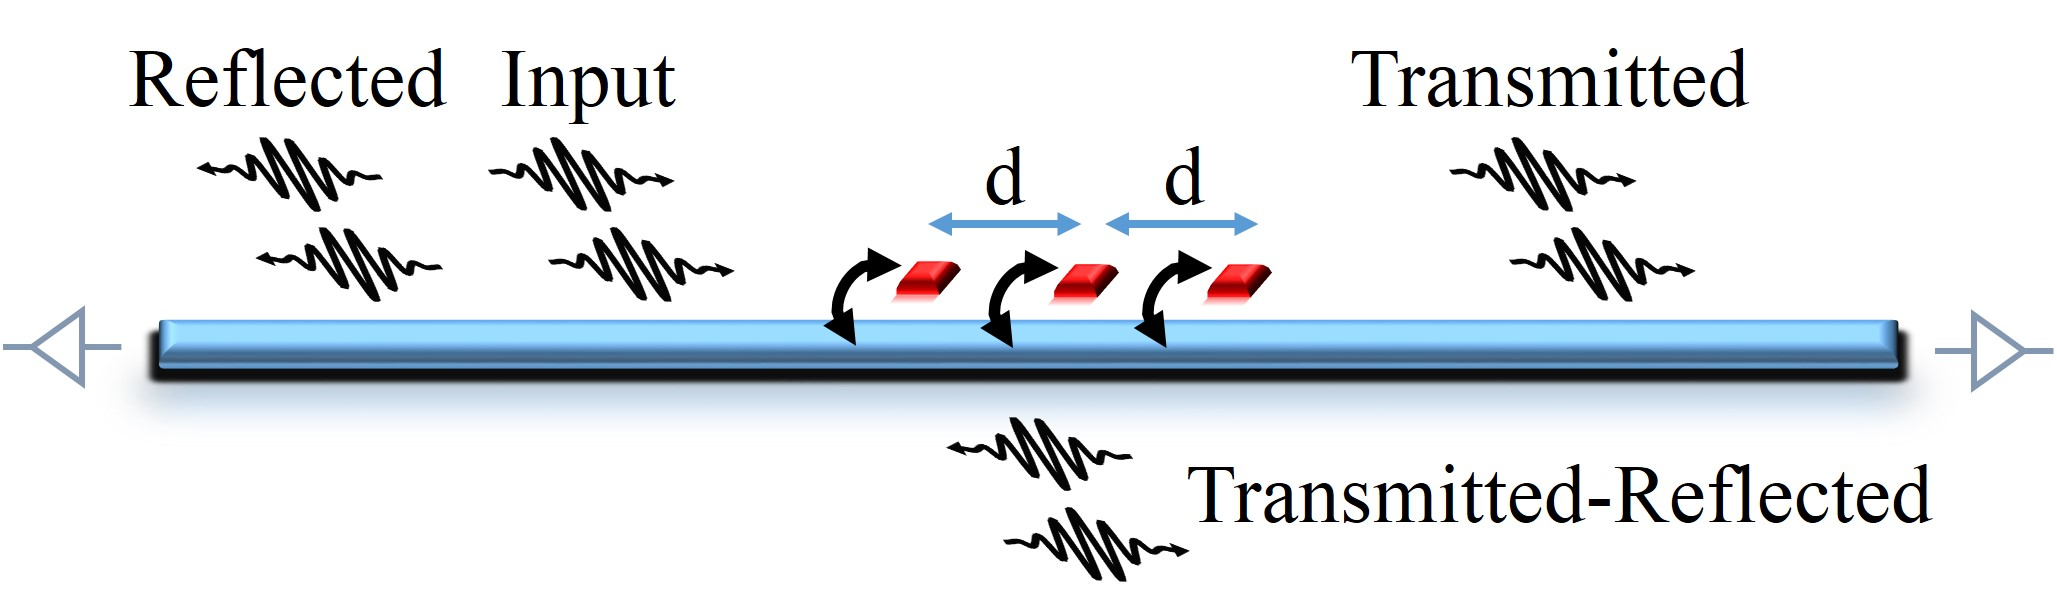 a) Schematic representation of the system: waveguide with input and output fields and the qubits (red squares) separated by a distance